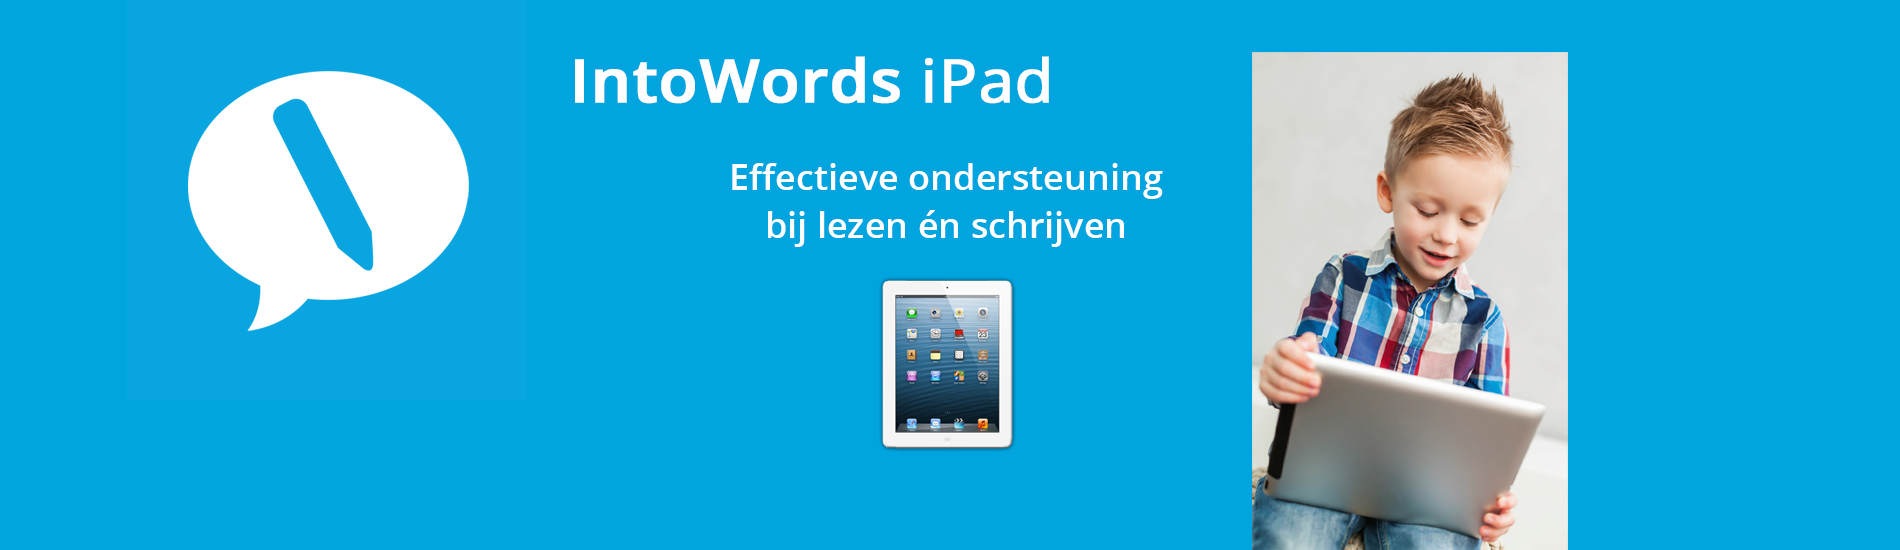 slider intowords ipad